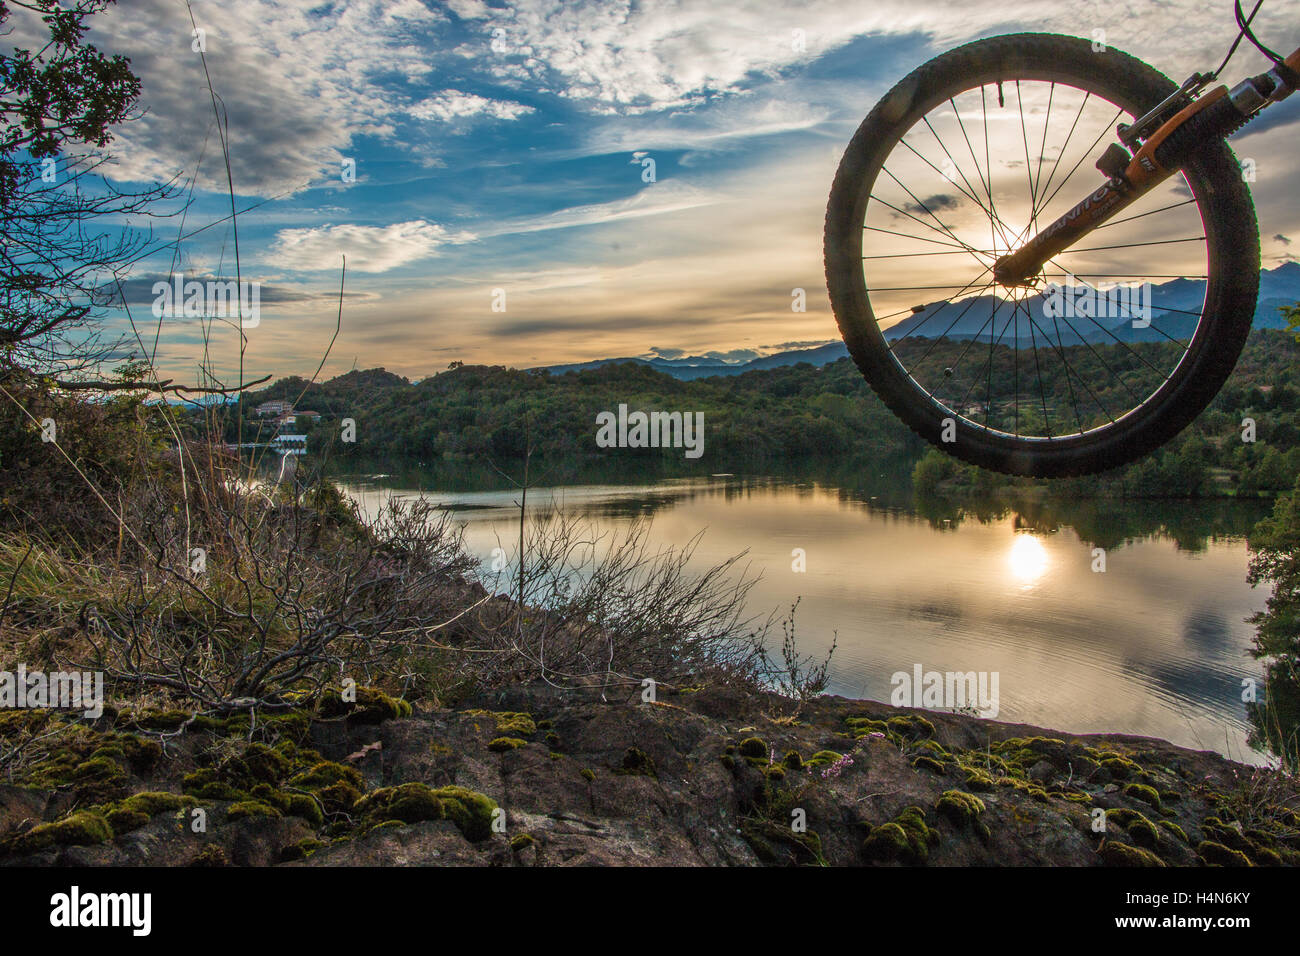 A mountain bike wheel at sunset with the sun reflection in the lake - Stock Image